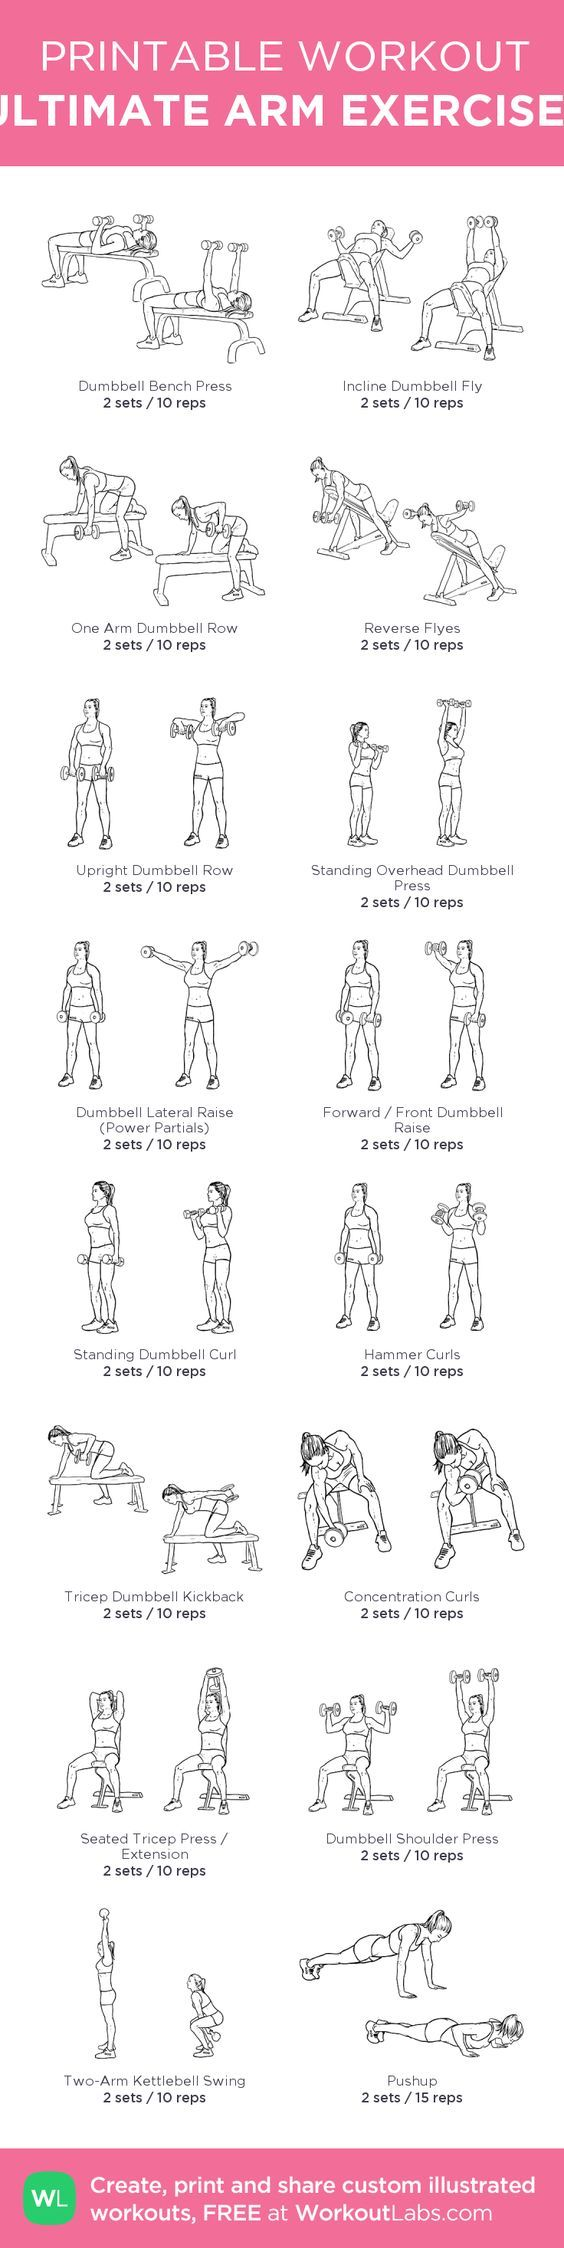 ULTIMATE ARM EXERCISES: my custom printable workout by @WorkoutLabs #workoutlabs #customworkout: